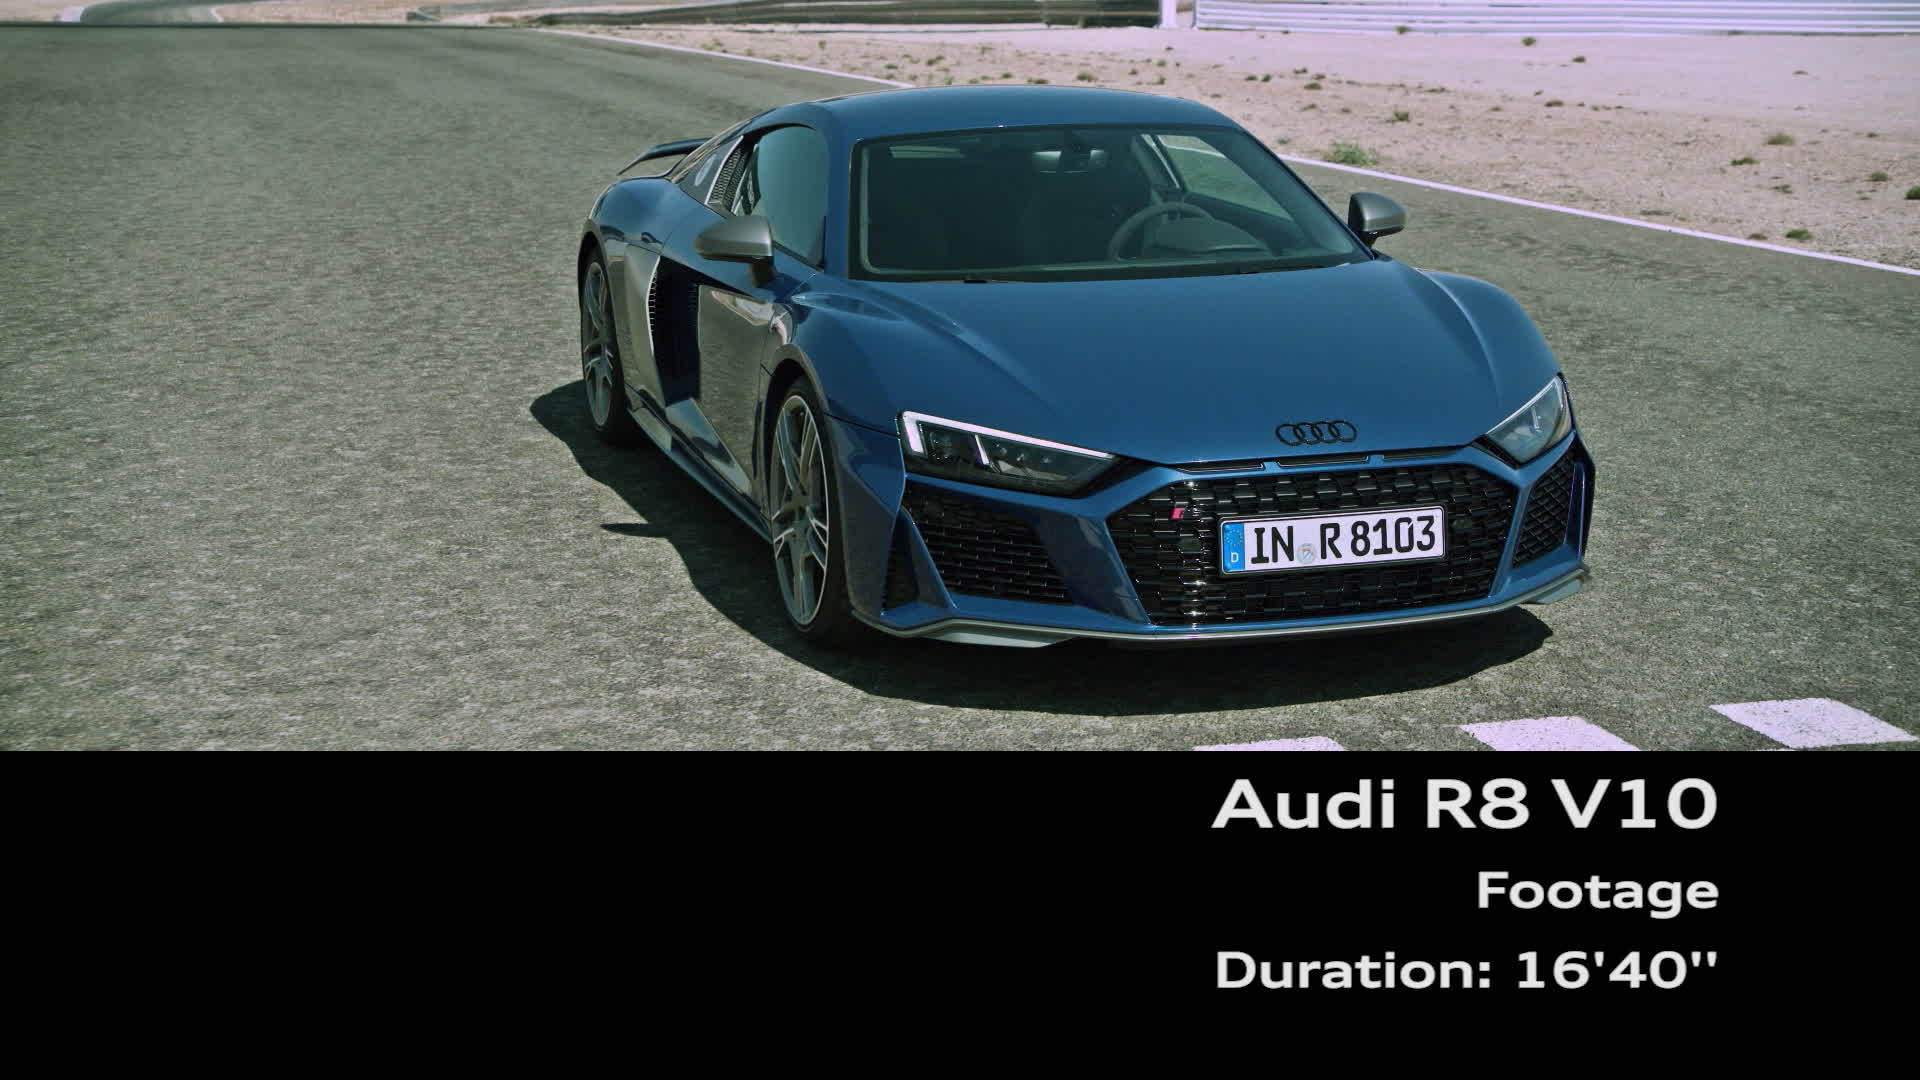 Audi R8 Coupé V10 performance quattro (Footage)